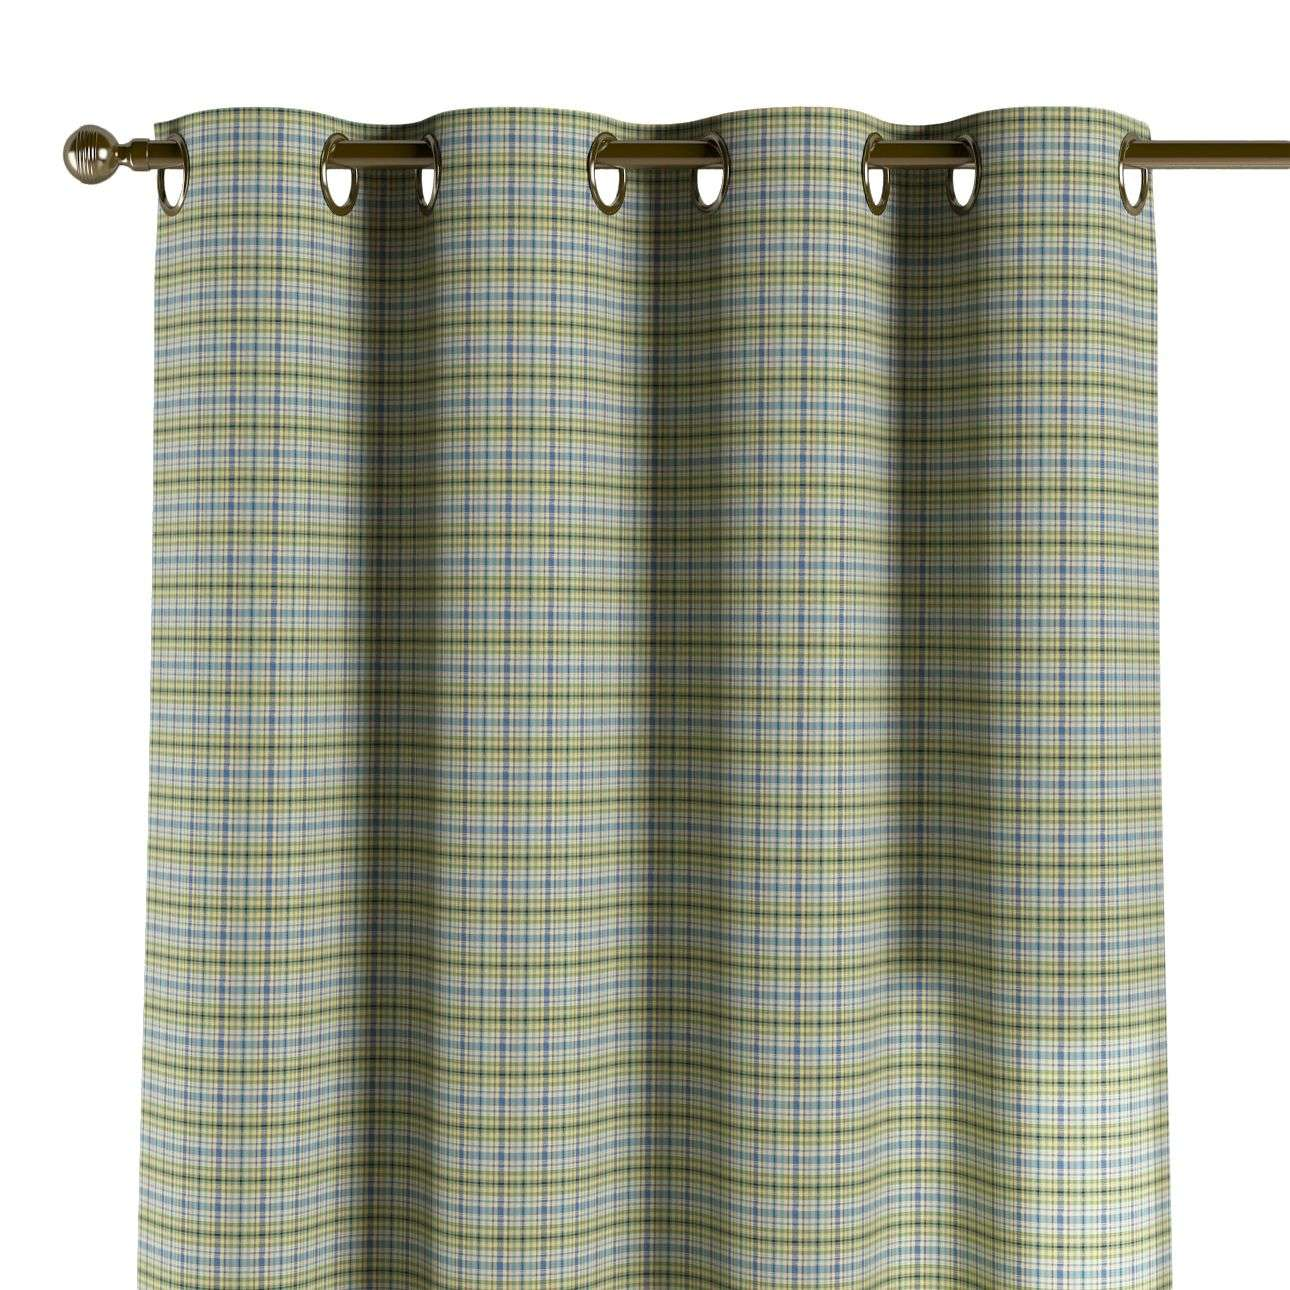 Eyelet curtains 130 x 260 cm (51 x 102 inch) in collection Bristol, fabric: 126-69